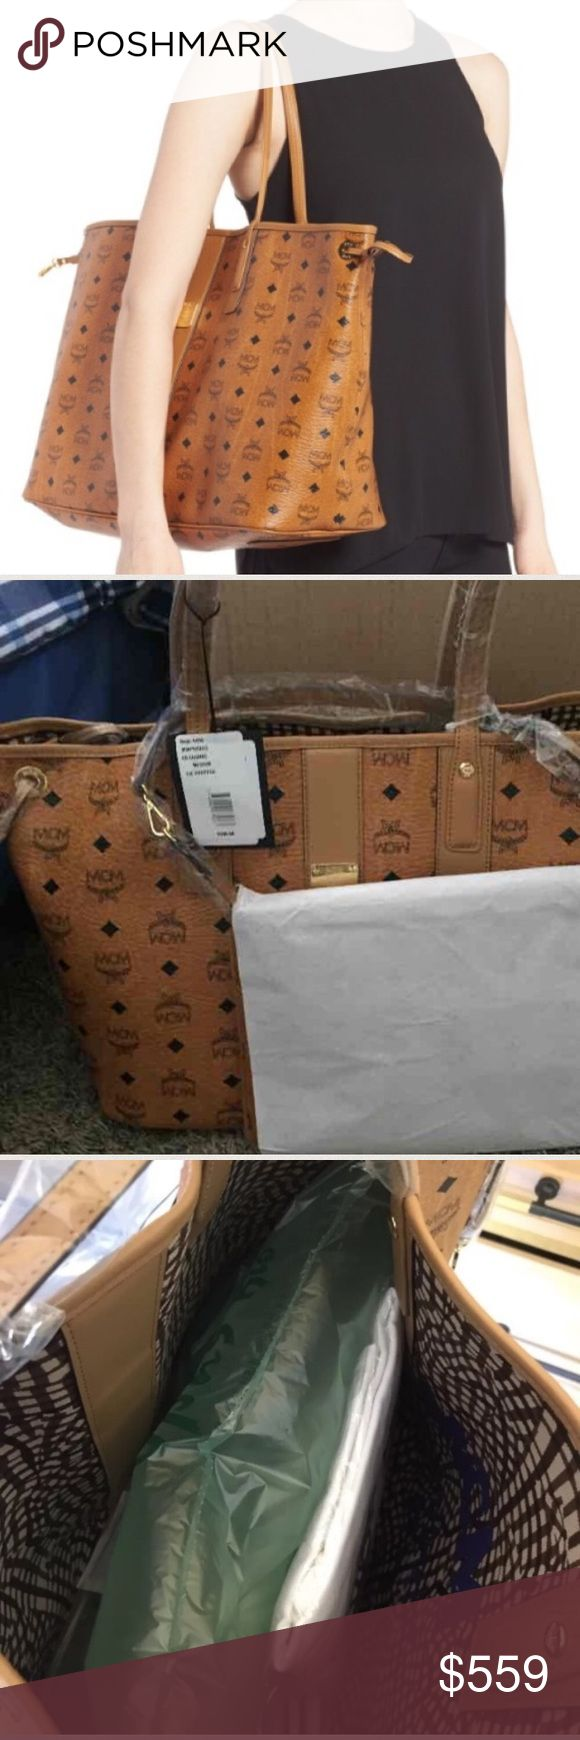 MCM large new liz tote and pouch This is a brand-new with tags MCM large Liz shopper. Includes the duster and pouch. It is still wrapped in plastic. FYI : I have sold many brand-new MCM bag so check my Feedback. At least half of the MCM bags on here are fake so check your sellers feedback and feel free to tag me if you need help. My price is firm and I do not trade MCM Bags Totes